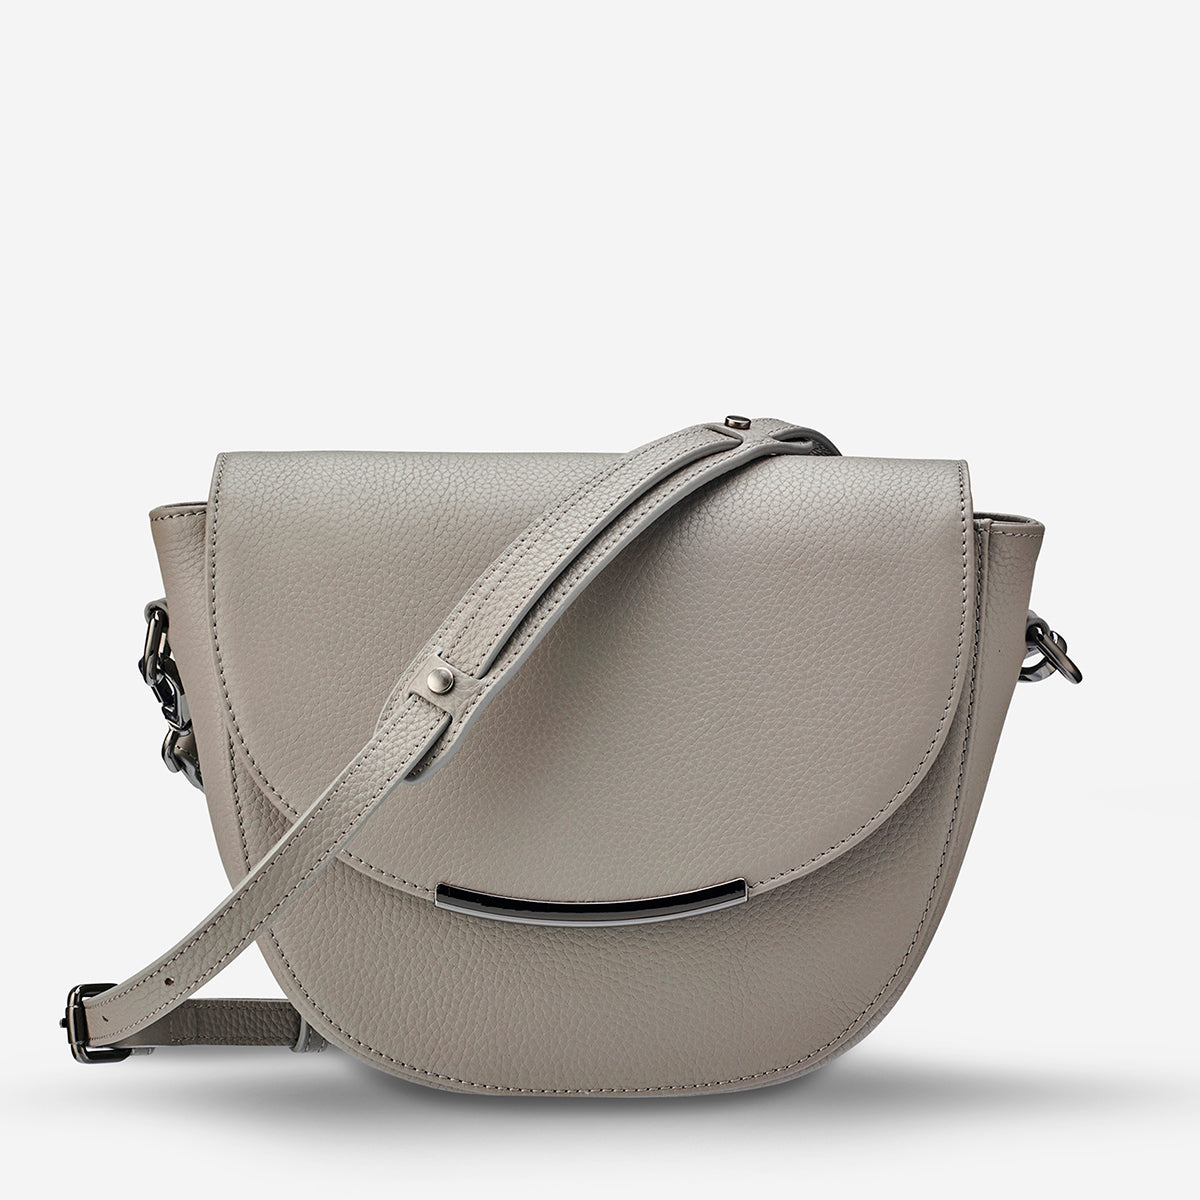 Status Anxiety The Oracle Women's Leather Crossbody Bag - Light Grey